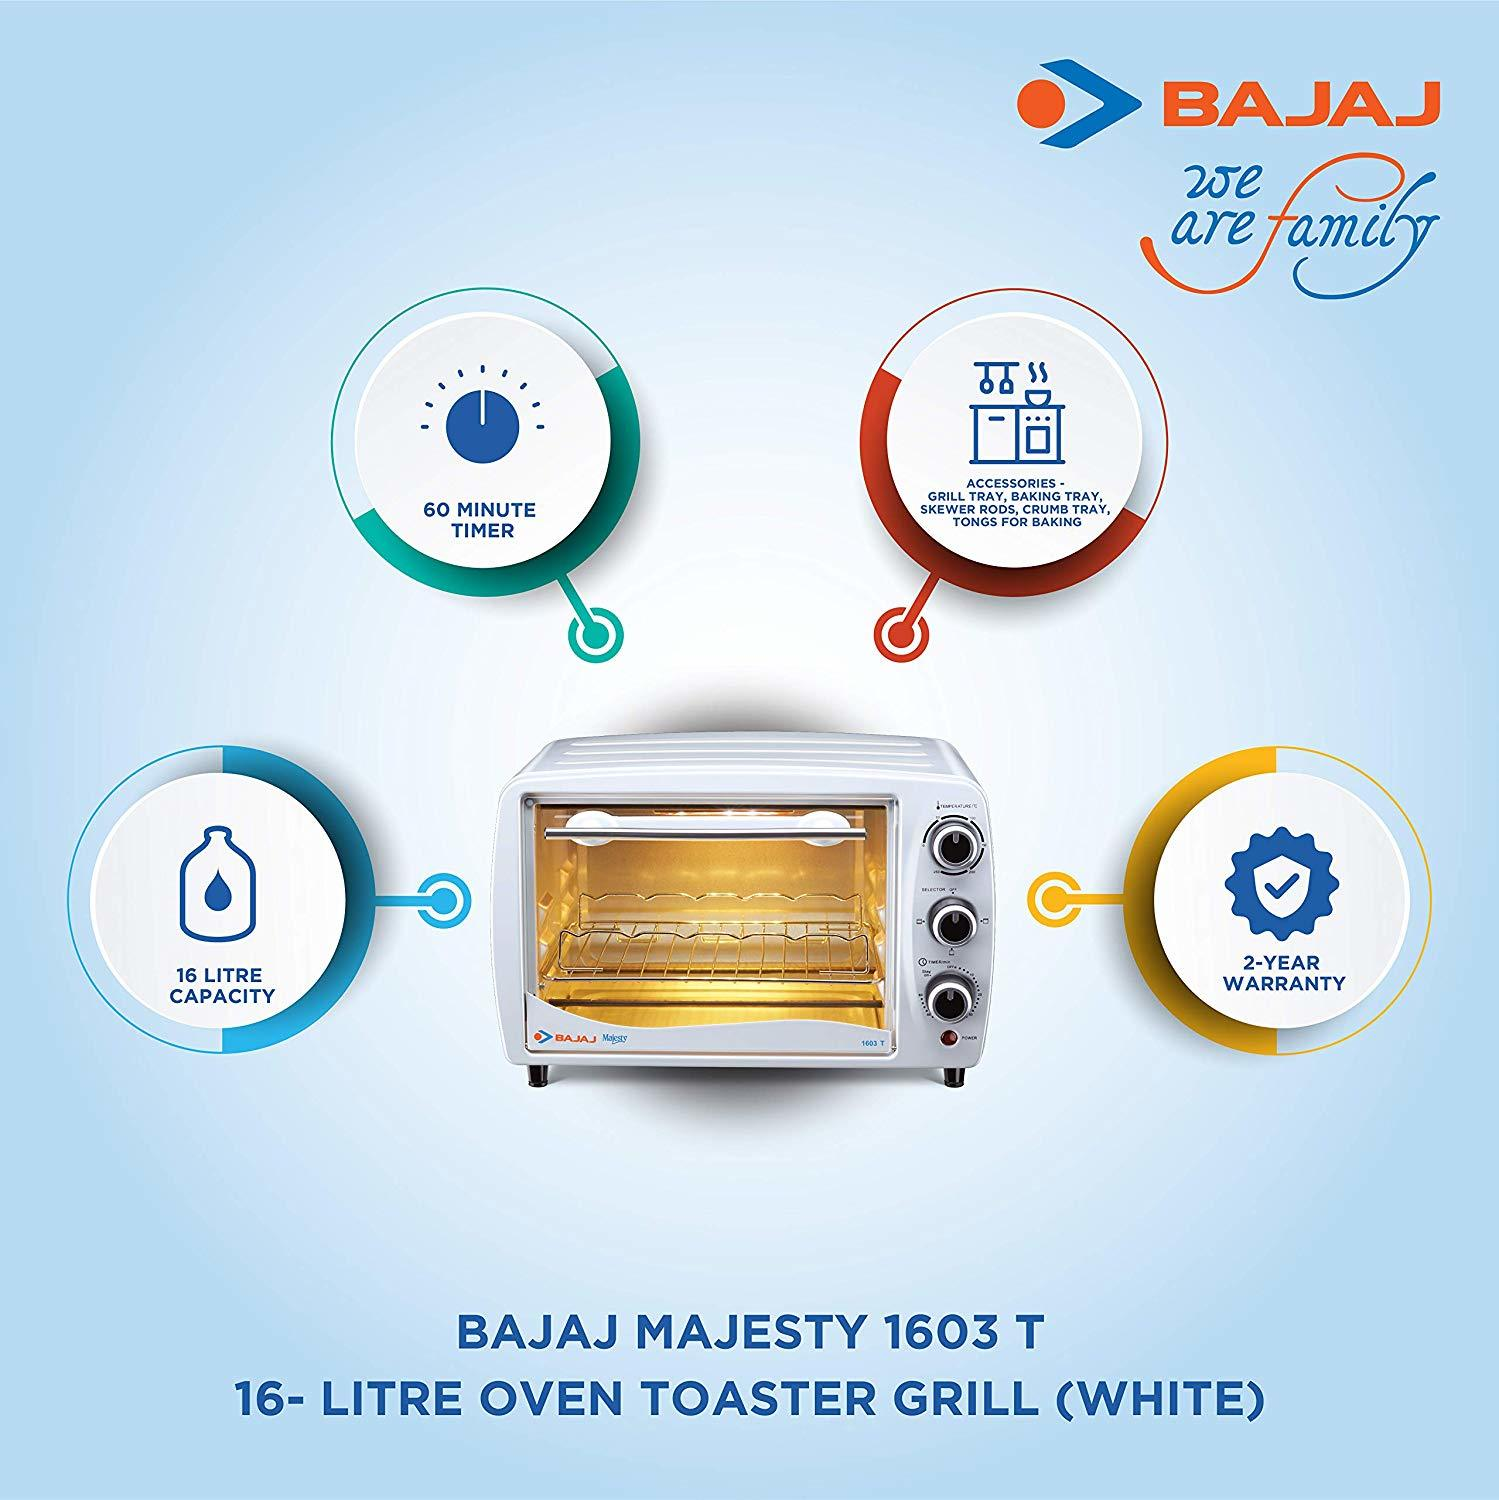 Bajaj Majesty 1603 T 16-Litre Oven Toaster Grill (White)